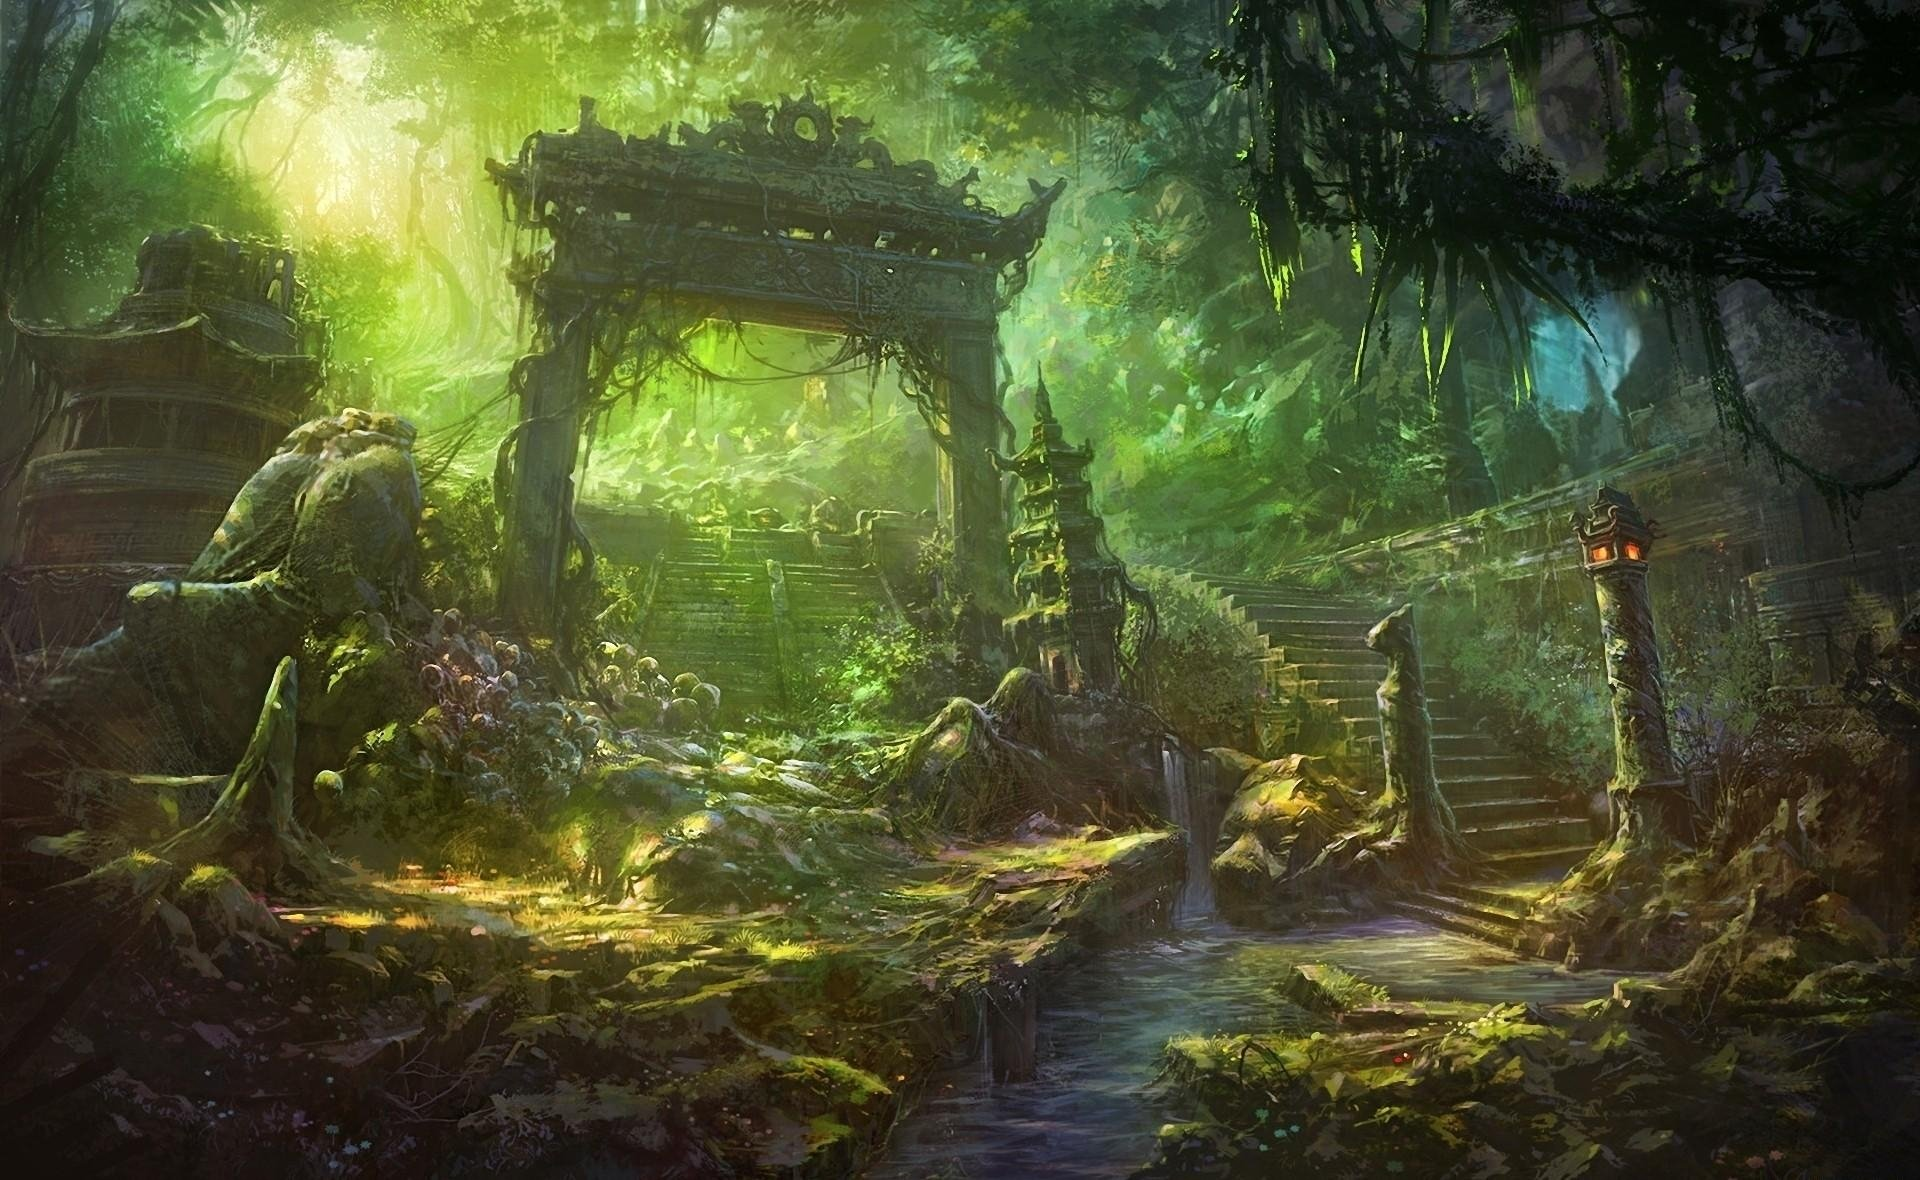 Fantasy Forest Wallpaper HD  WallpaperSafari